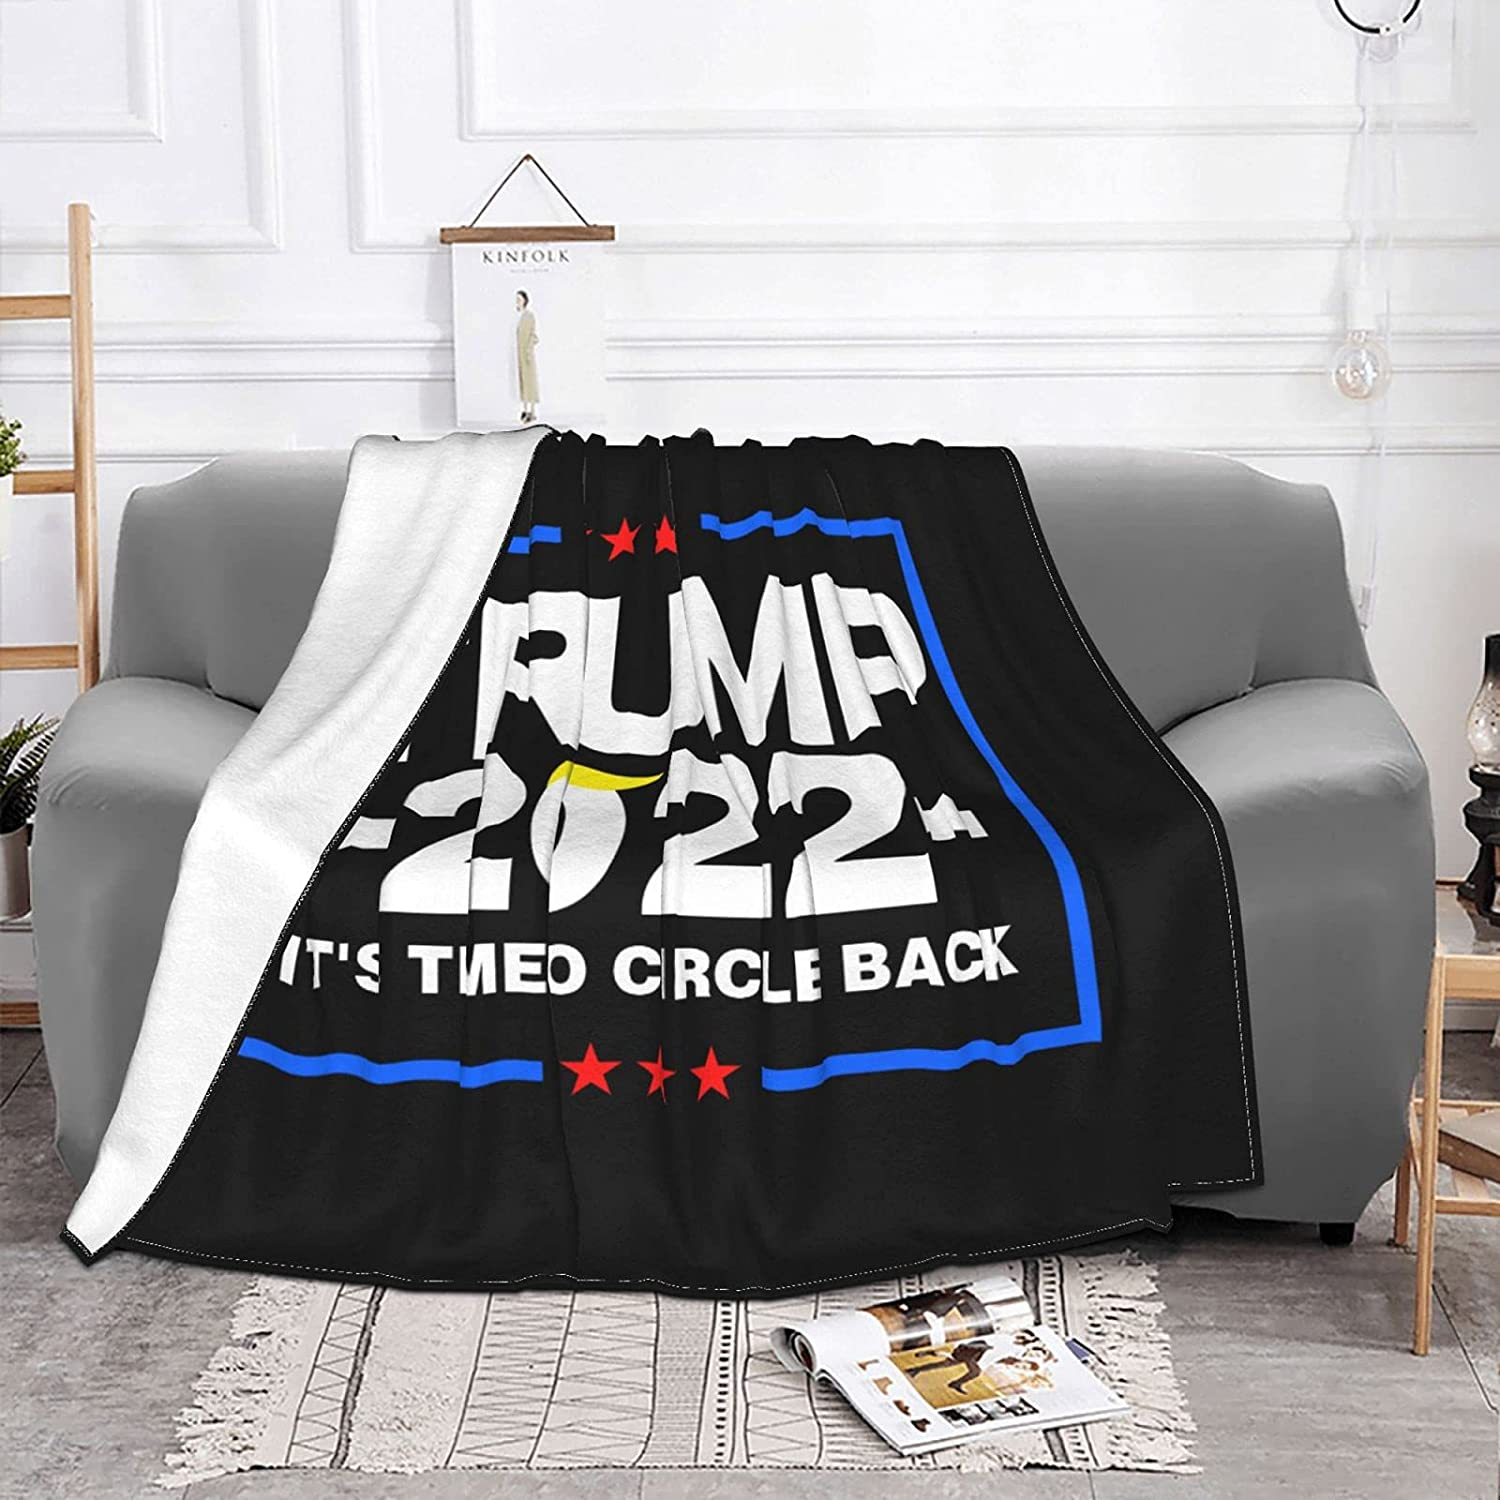 Gorgeous Trump NEW before selling 2022 It's Time to Circle Ultra Back Soft Anti-Pill Blanket